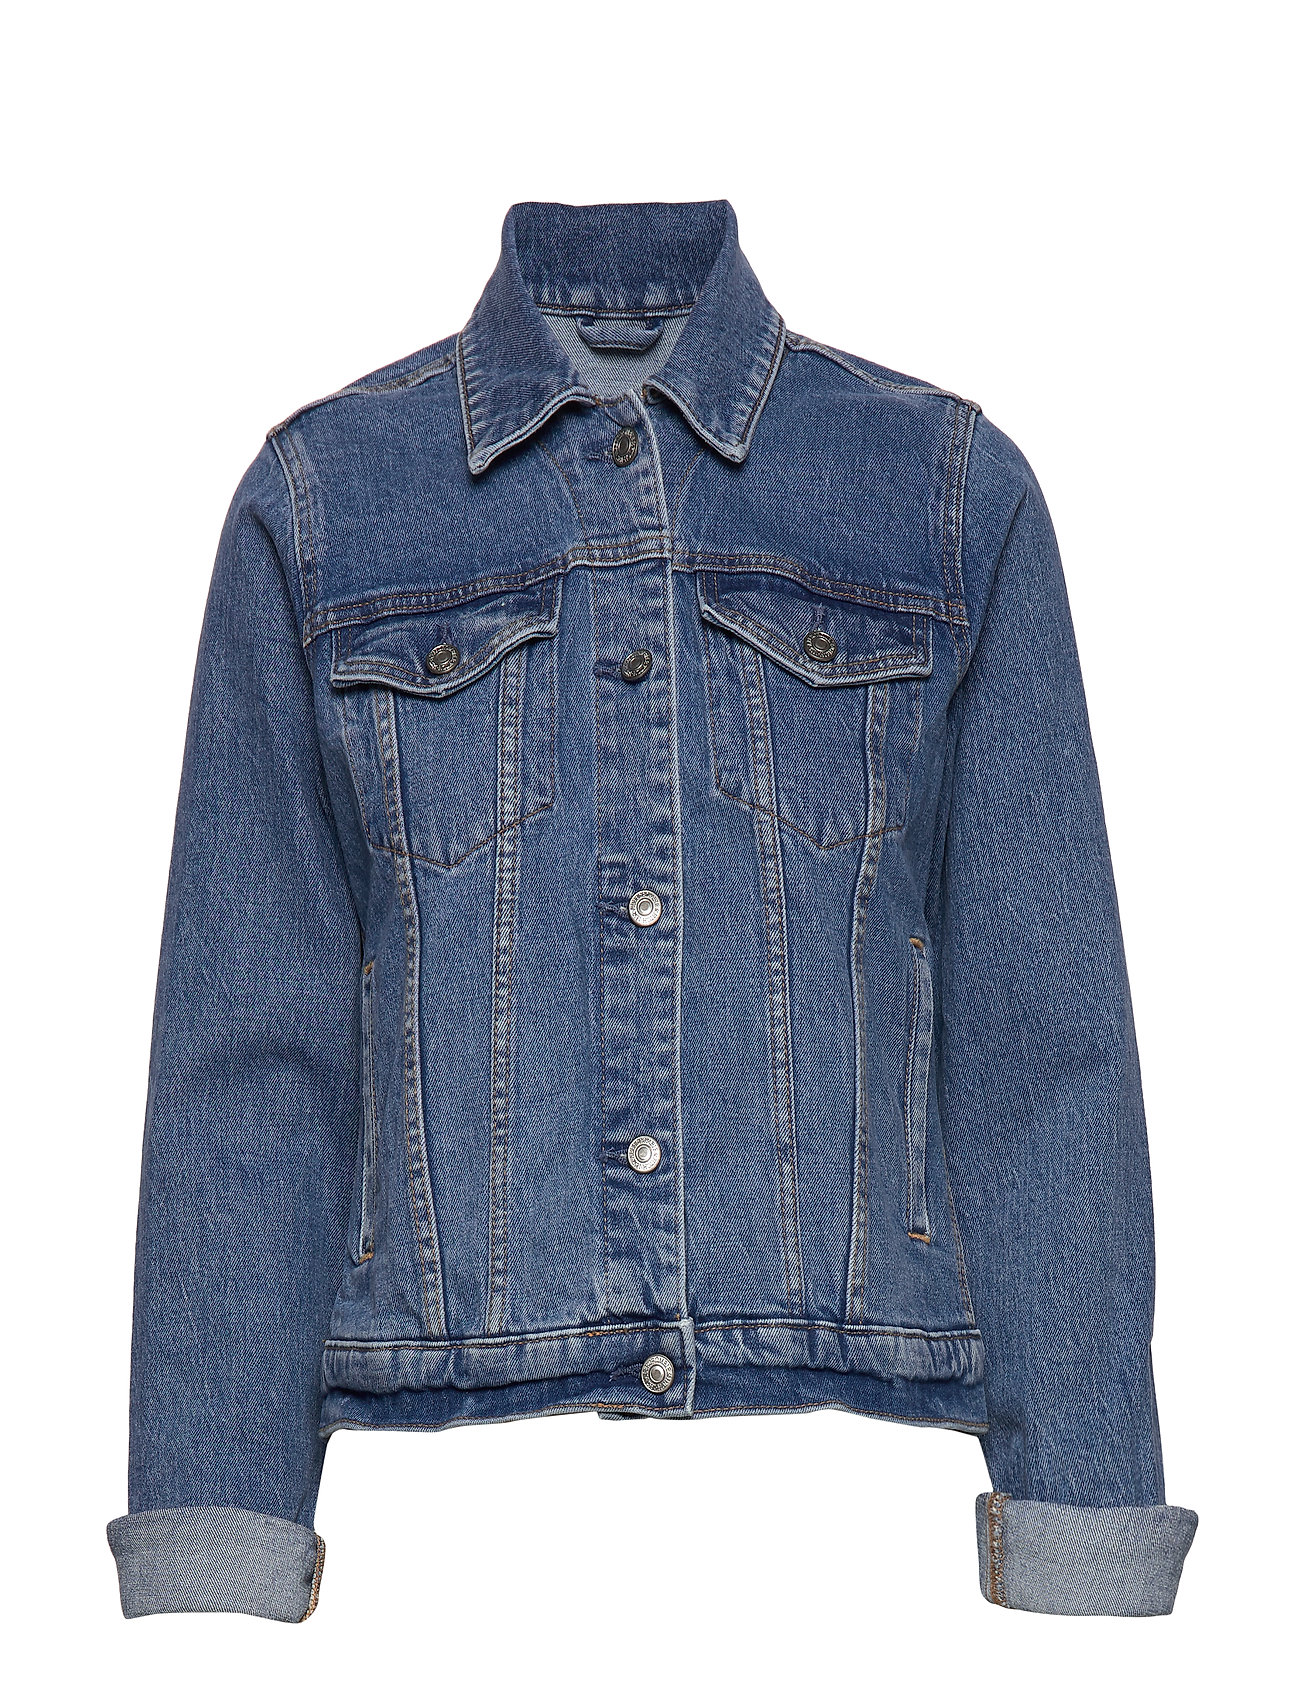 Abercrombie & Fitch Classic Denim Jacket - LIGHT BLUE DD